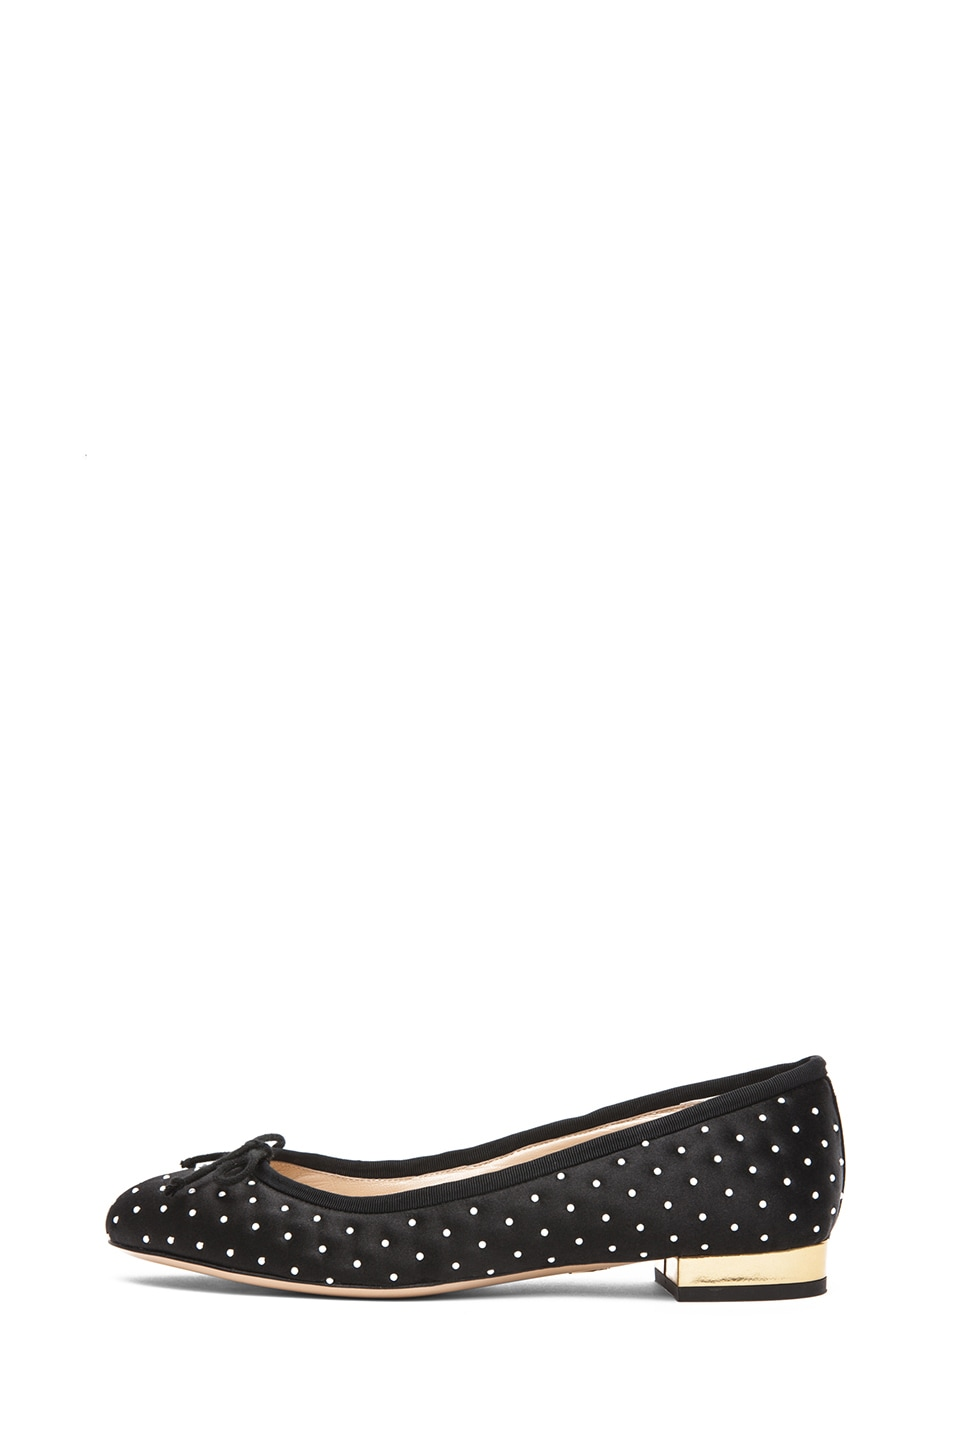 Image 1 of Charlotte Olympia Darcy Quilted Satin Flats with Pearls in Black